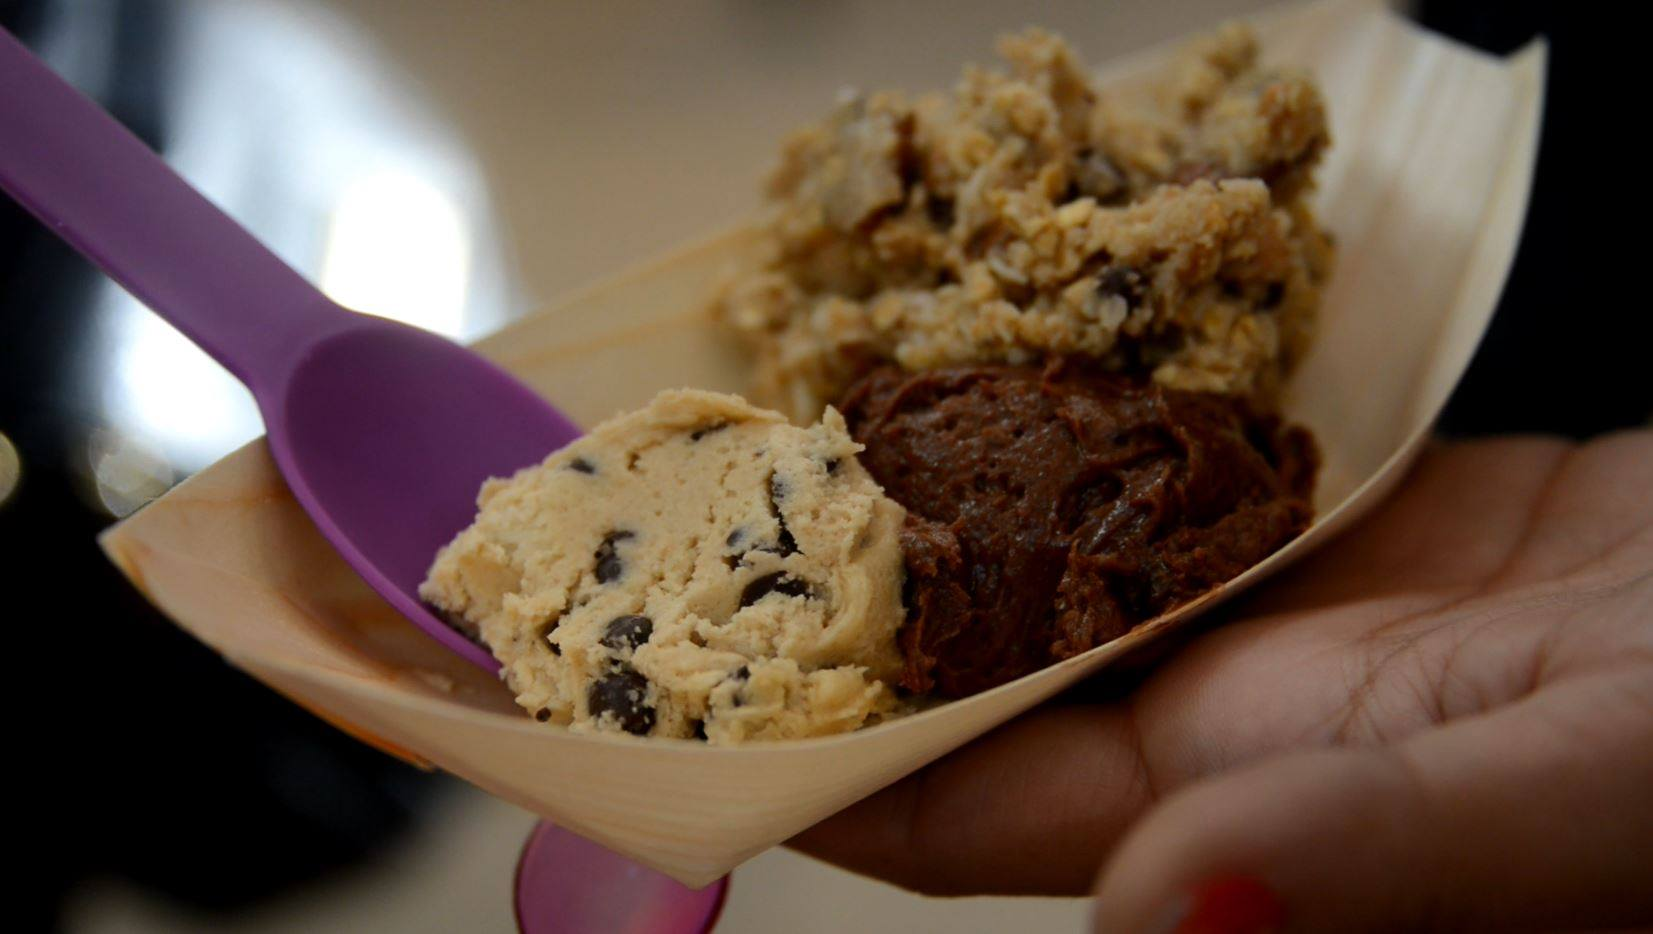 Scooped serves up cookie dough in North Star Mall